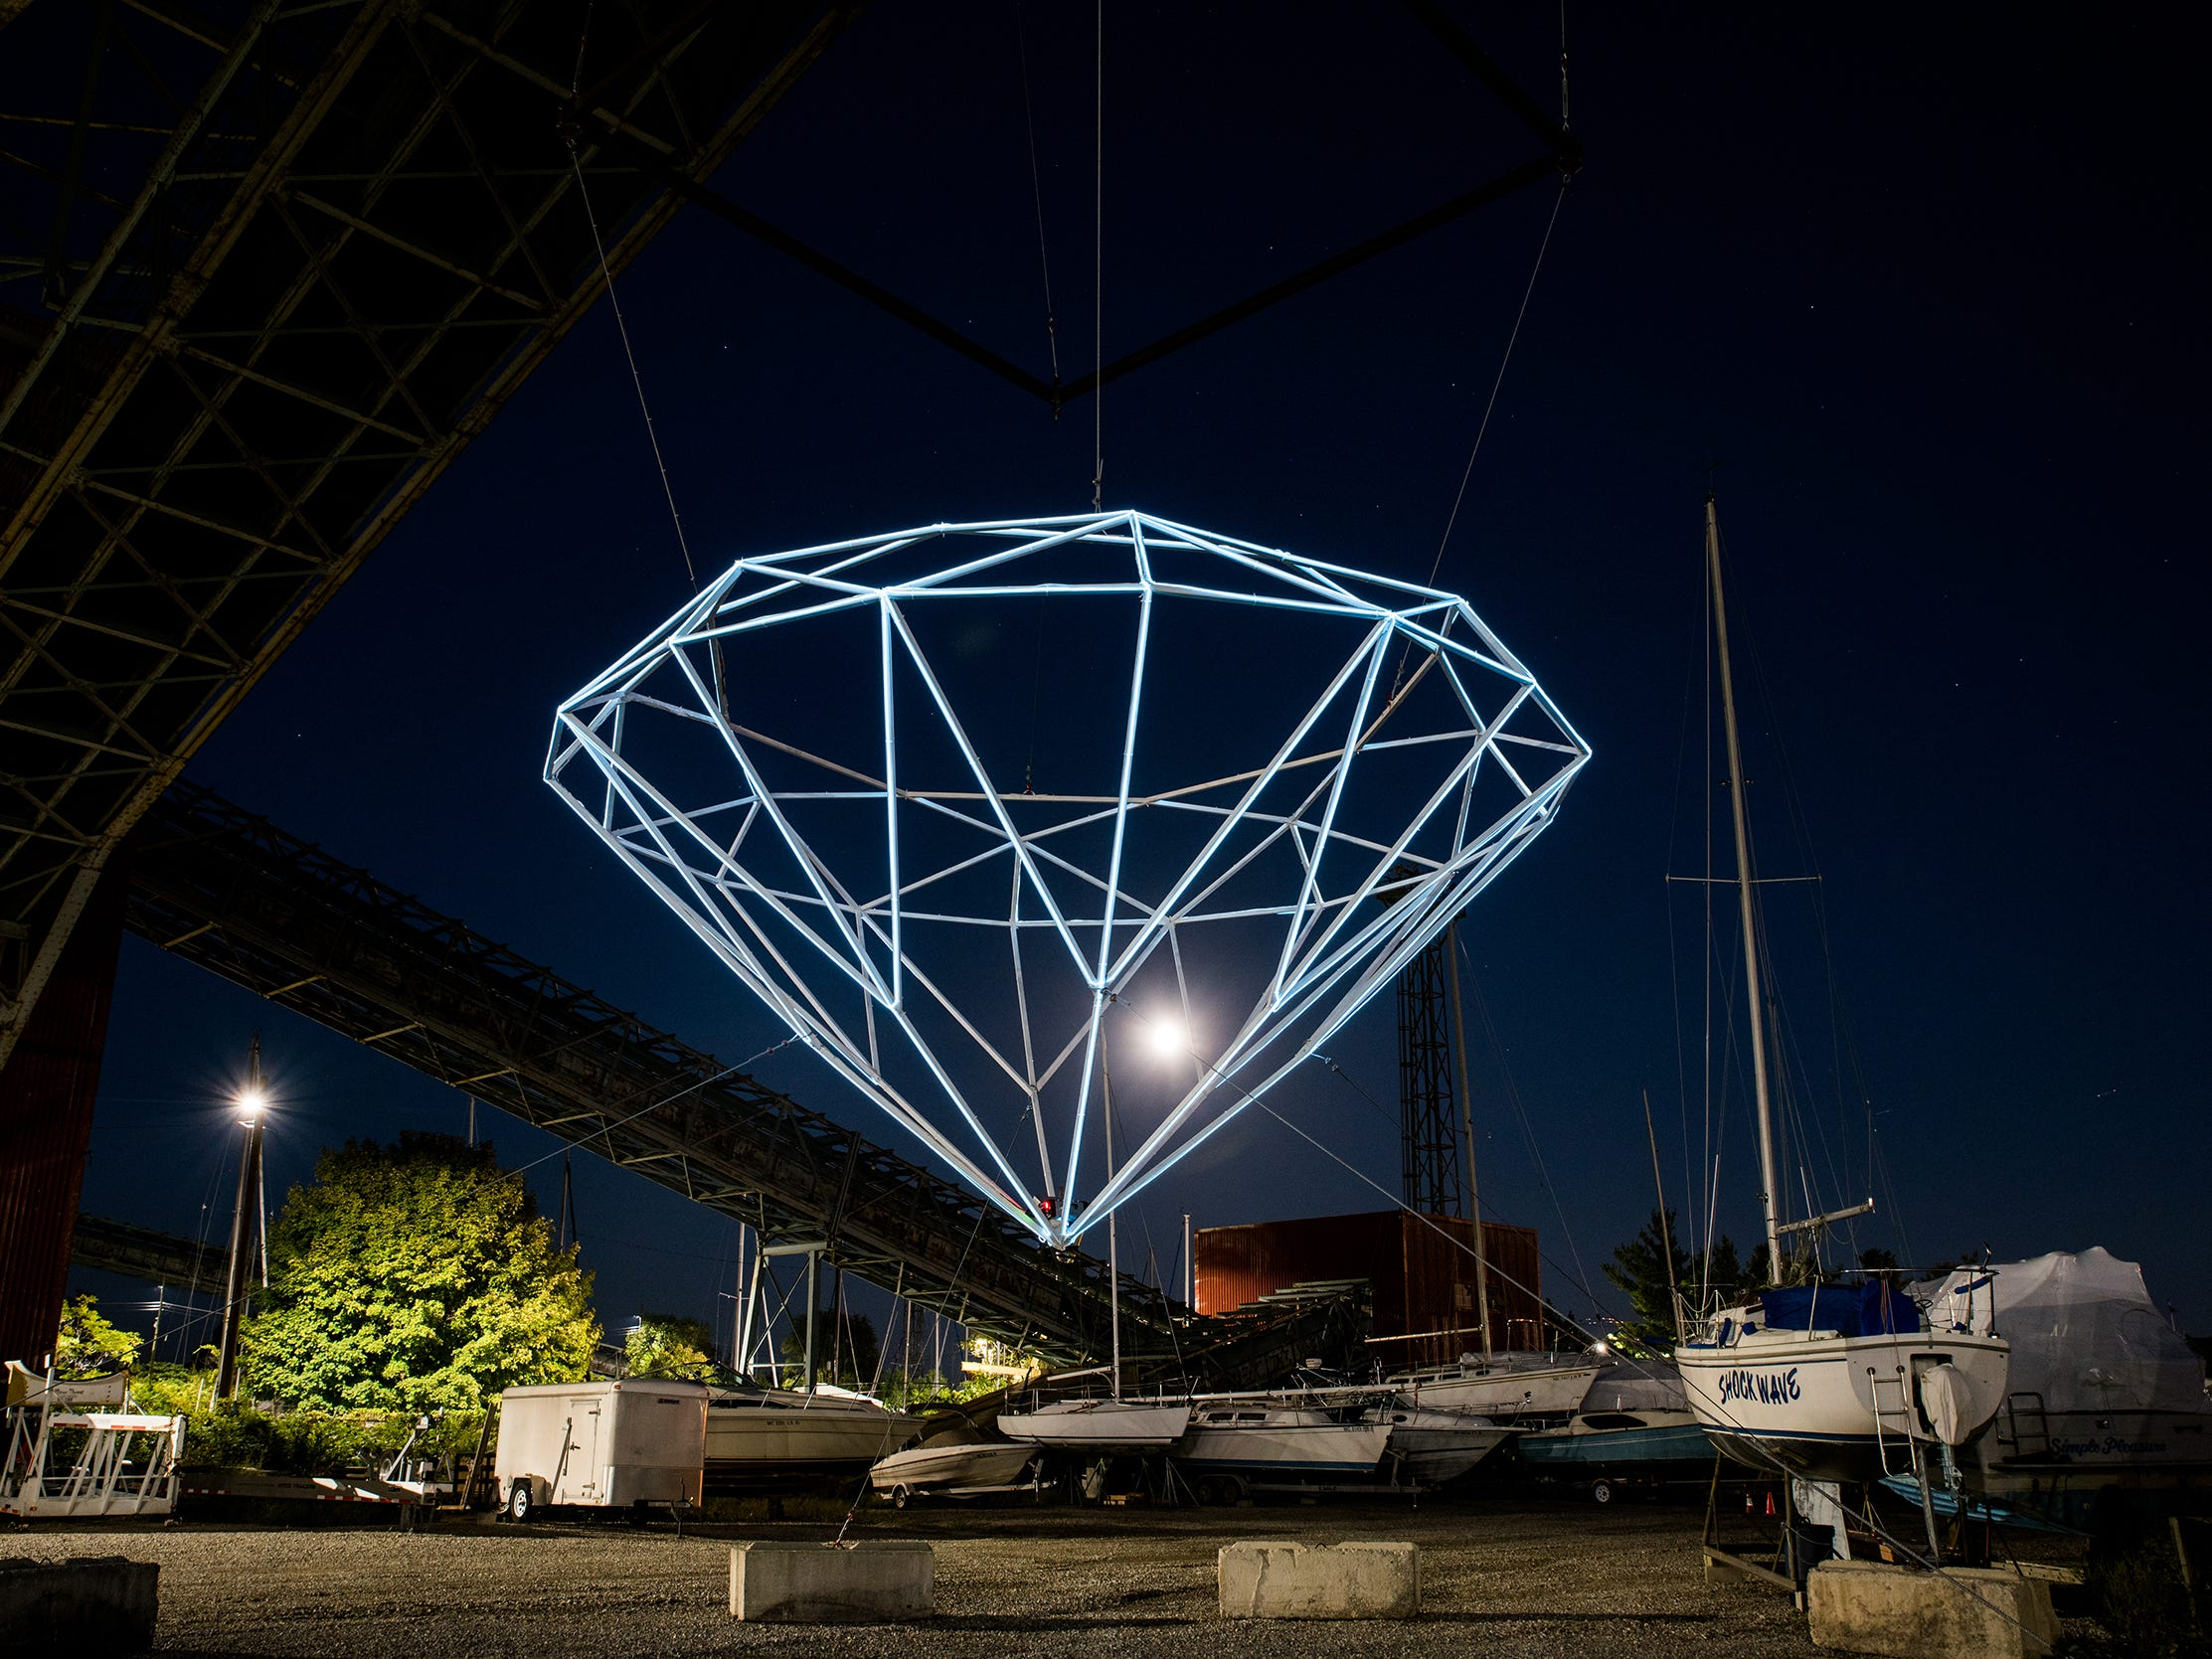 """""""This isn't just a diamond hanging here because we wanted to build a cool light installation,"""" Steve Coy says. """"It's a diamond in a boatyard in a coal factory. We crafted each one of these visual artifacts for this specific location."""""""